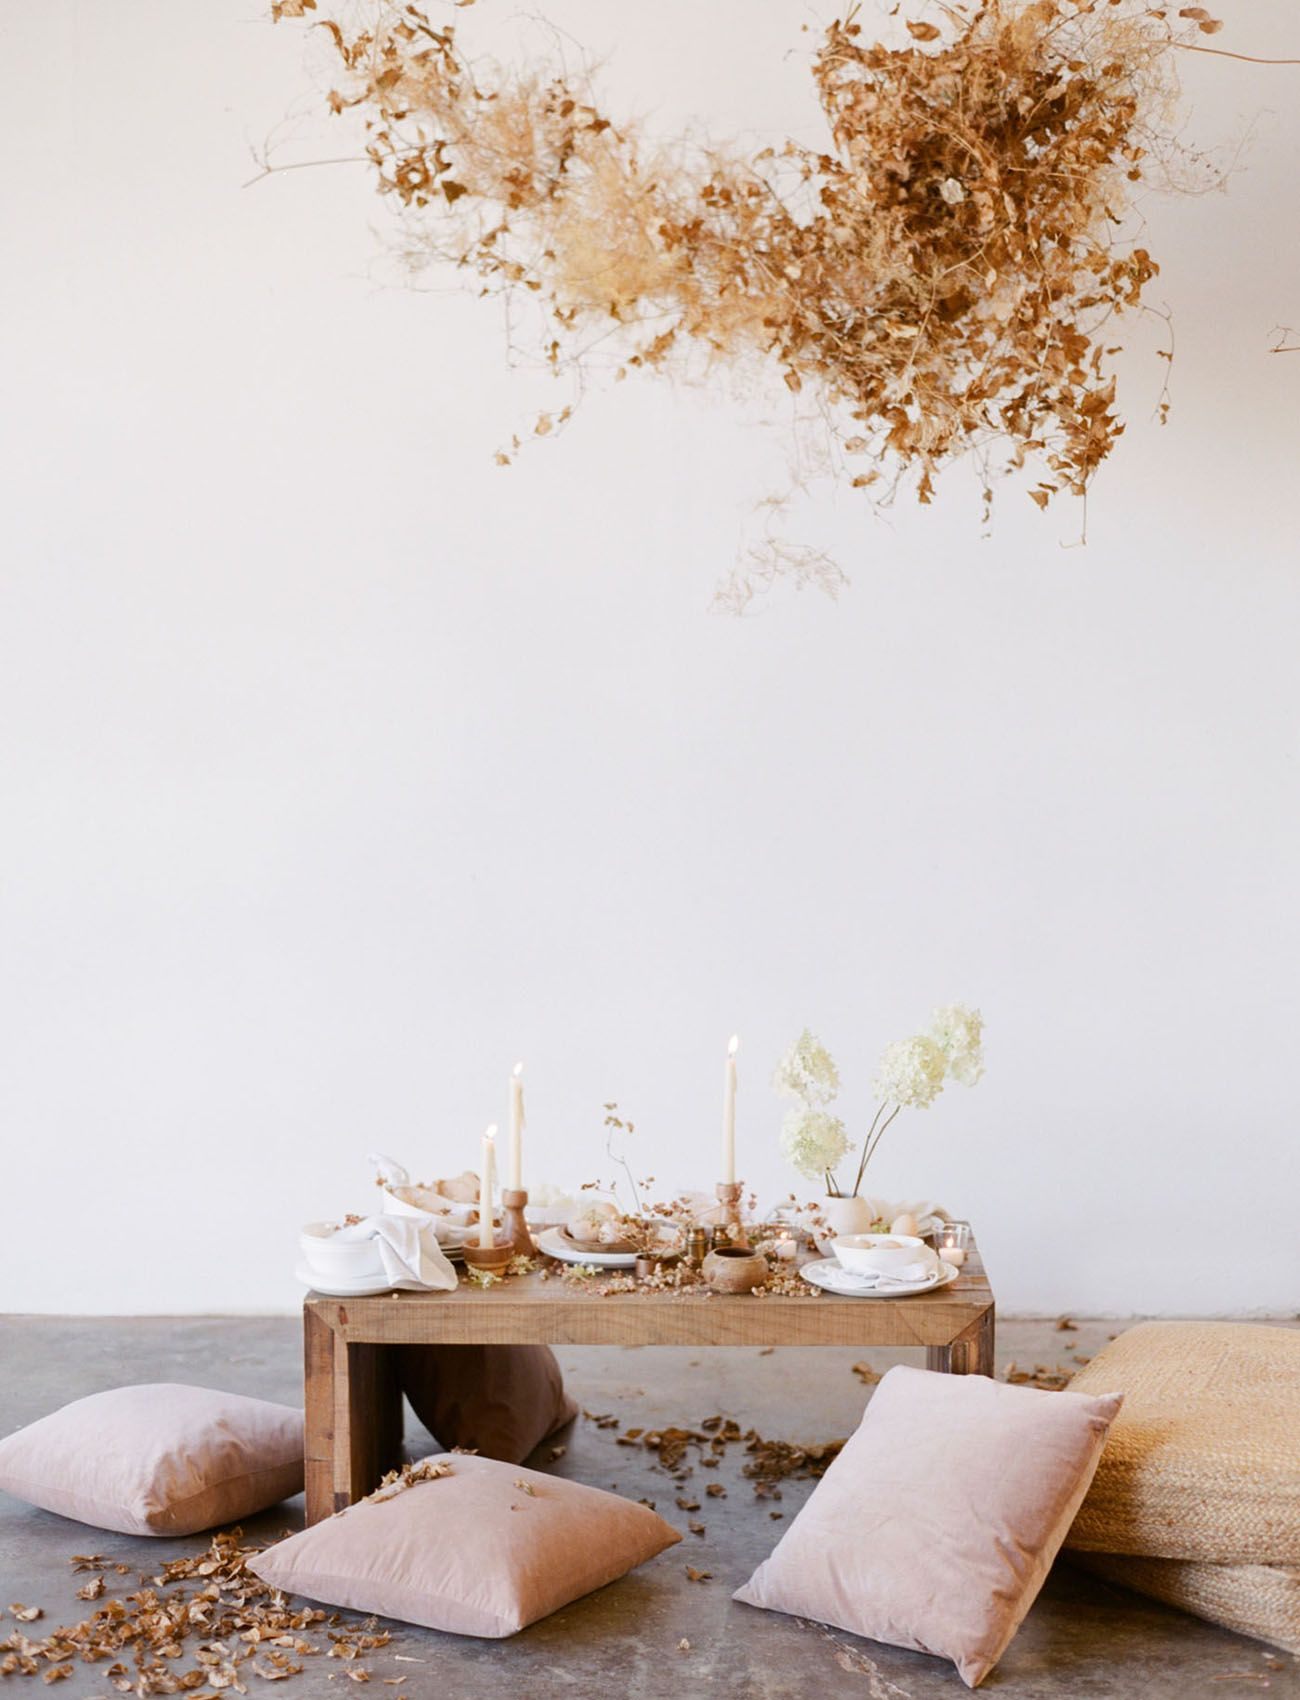 The Call of Autumn Rustic Meets Modern in the Foliage for